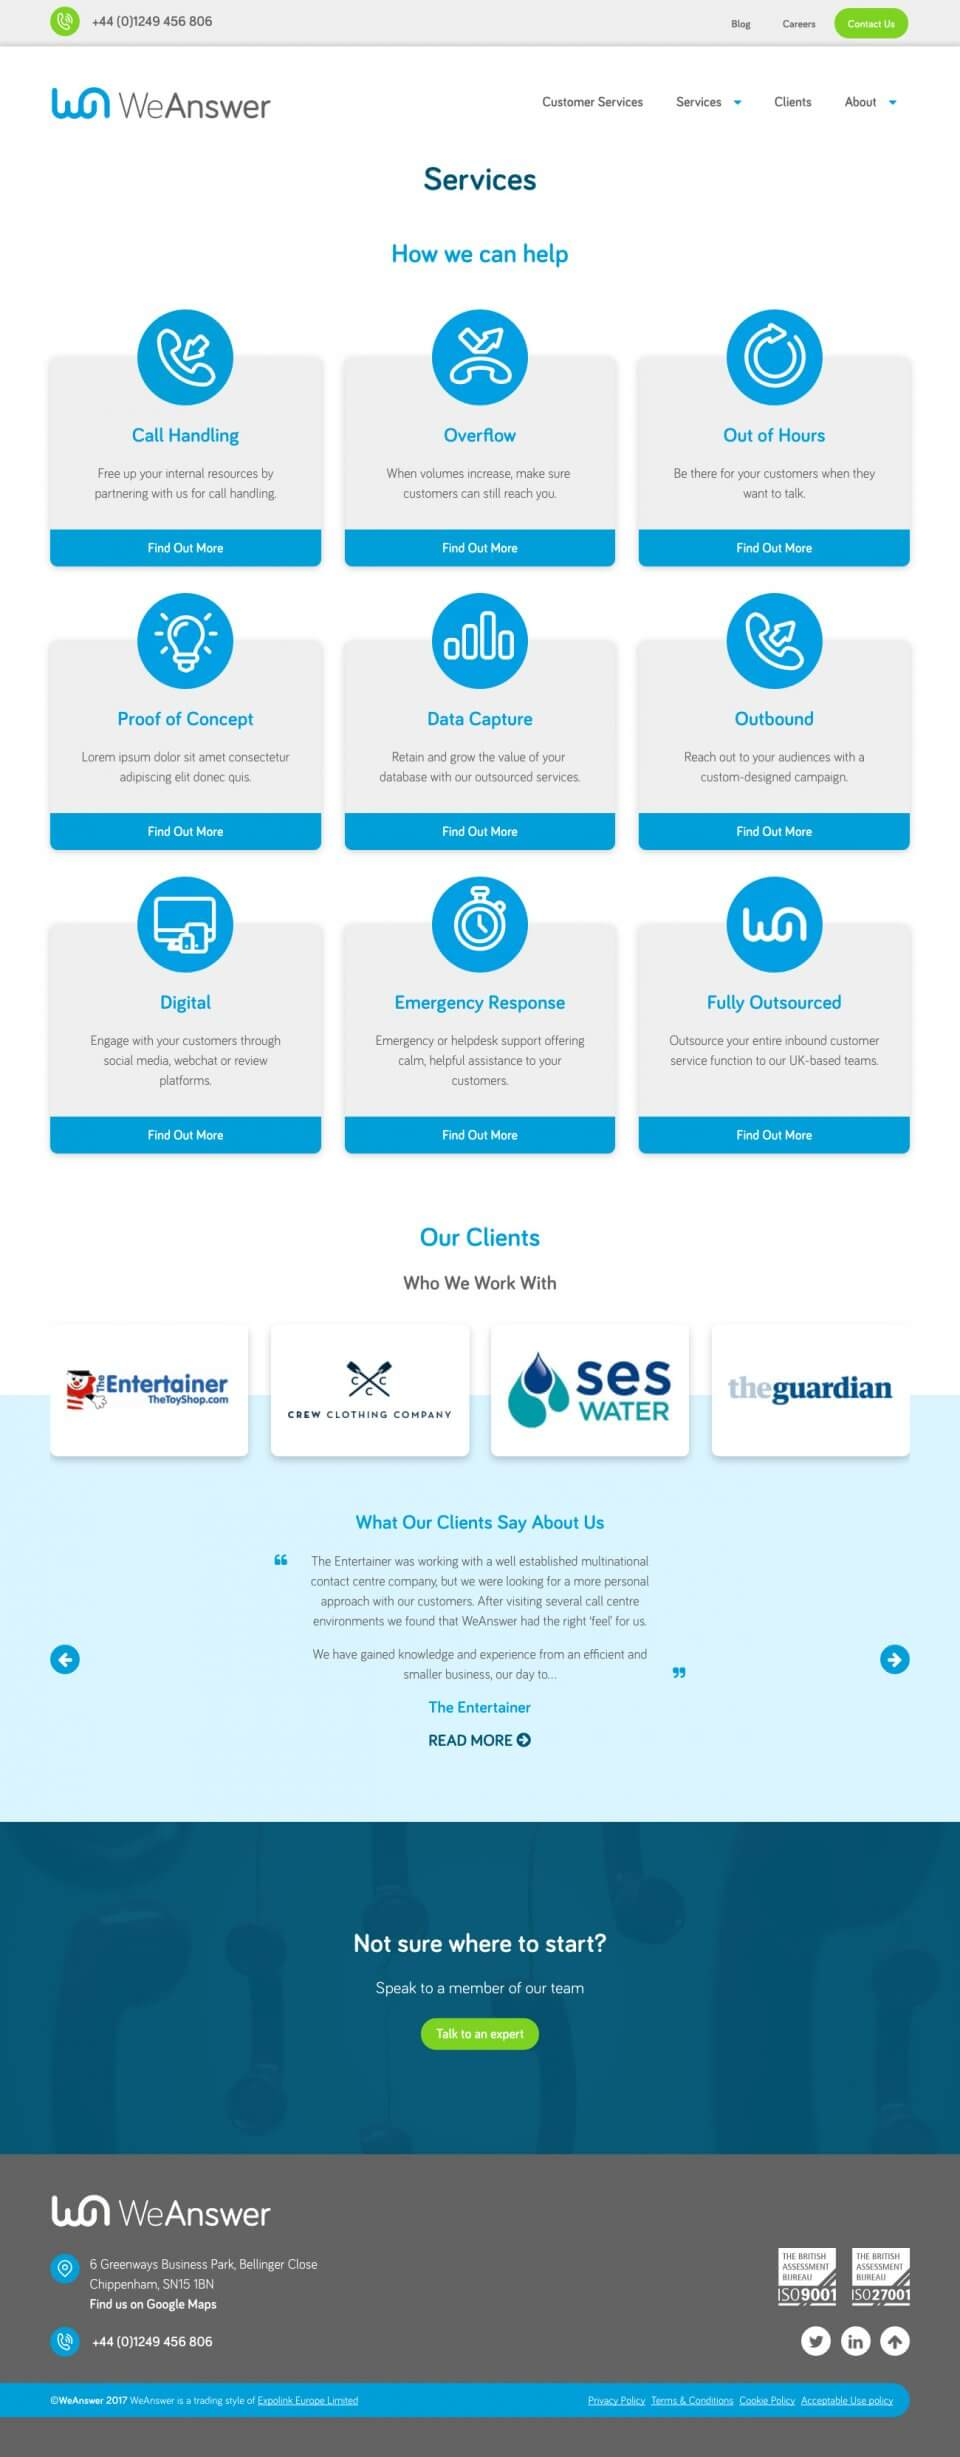 WeAnswer - Services Page